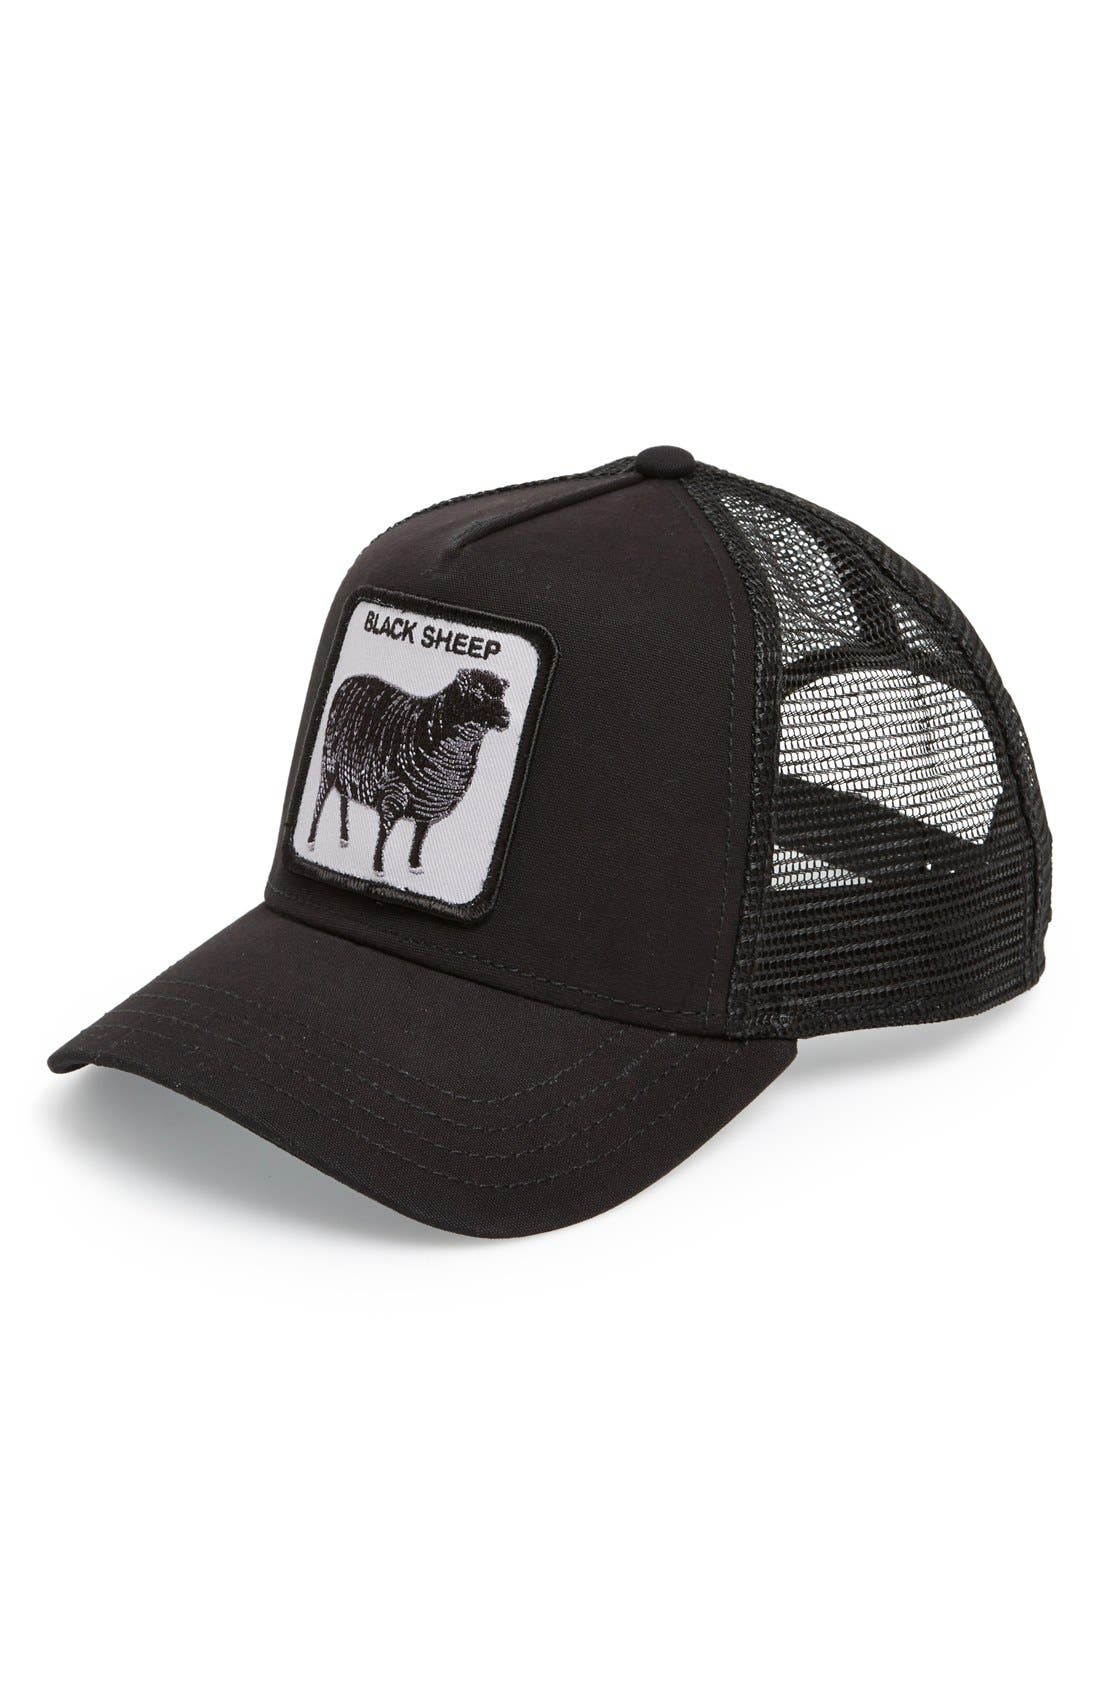 Alternate Image 1 Selected - Goorin Brothers 'Animal Farm - Naughty Lamb' Trucker Cap